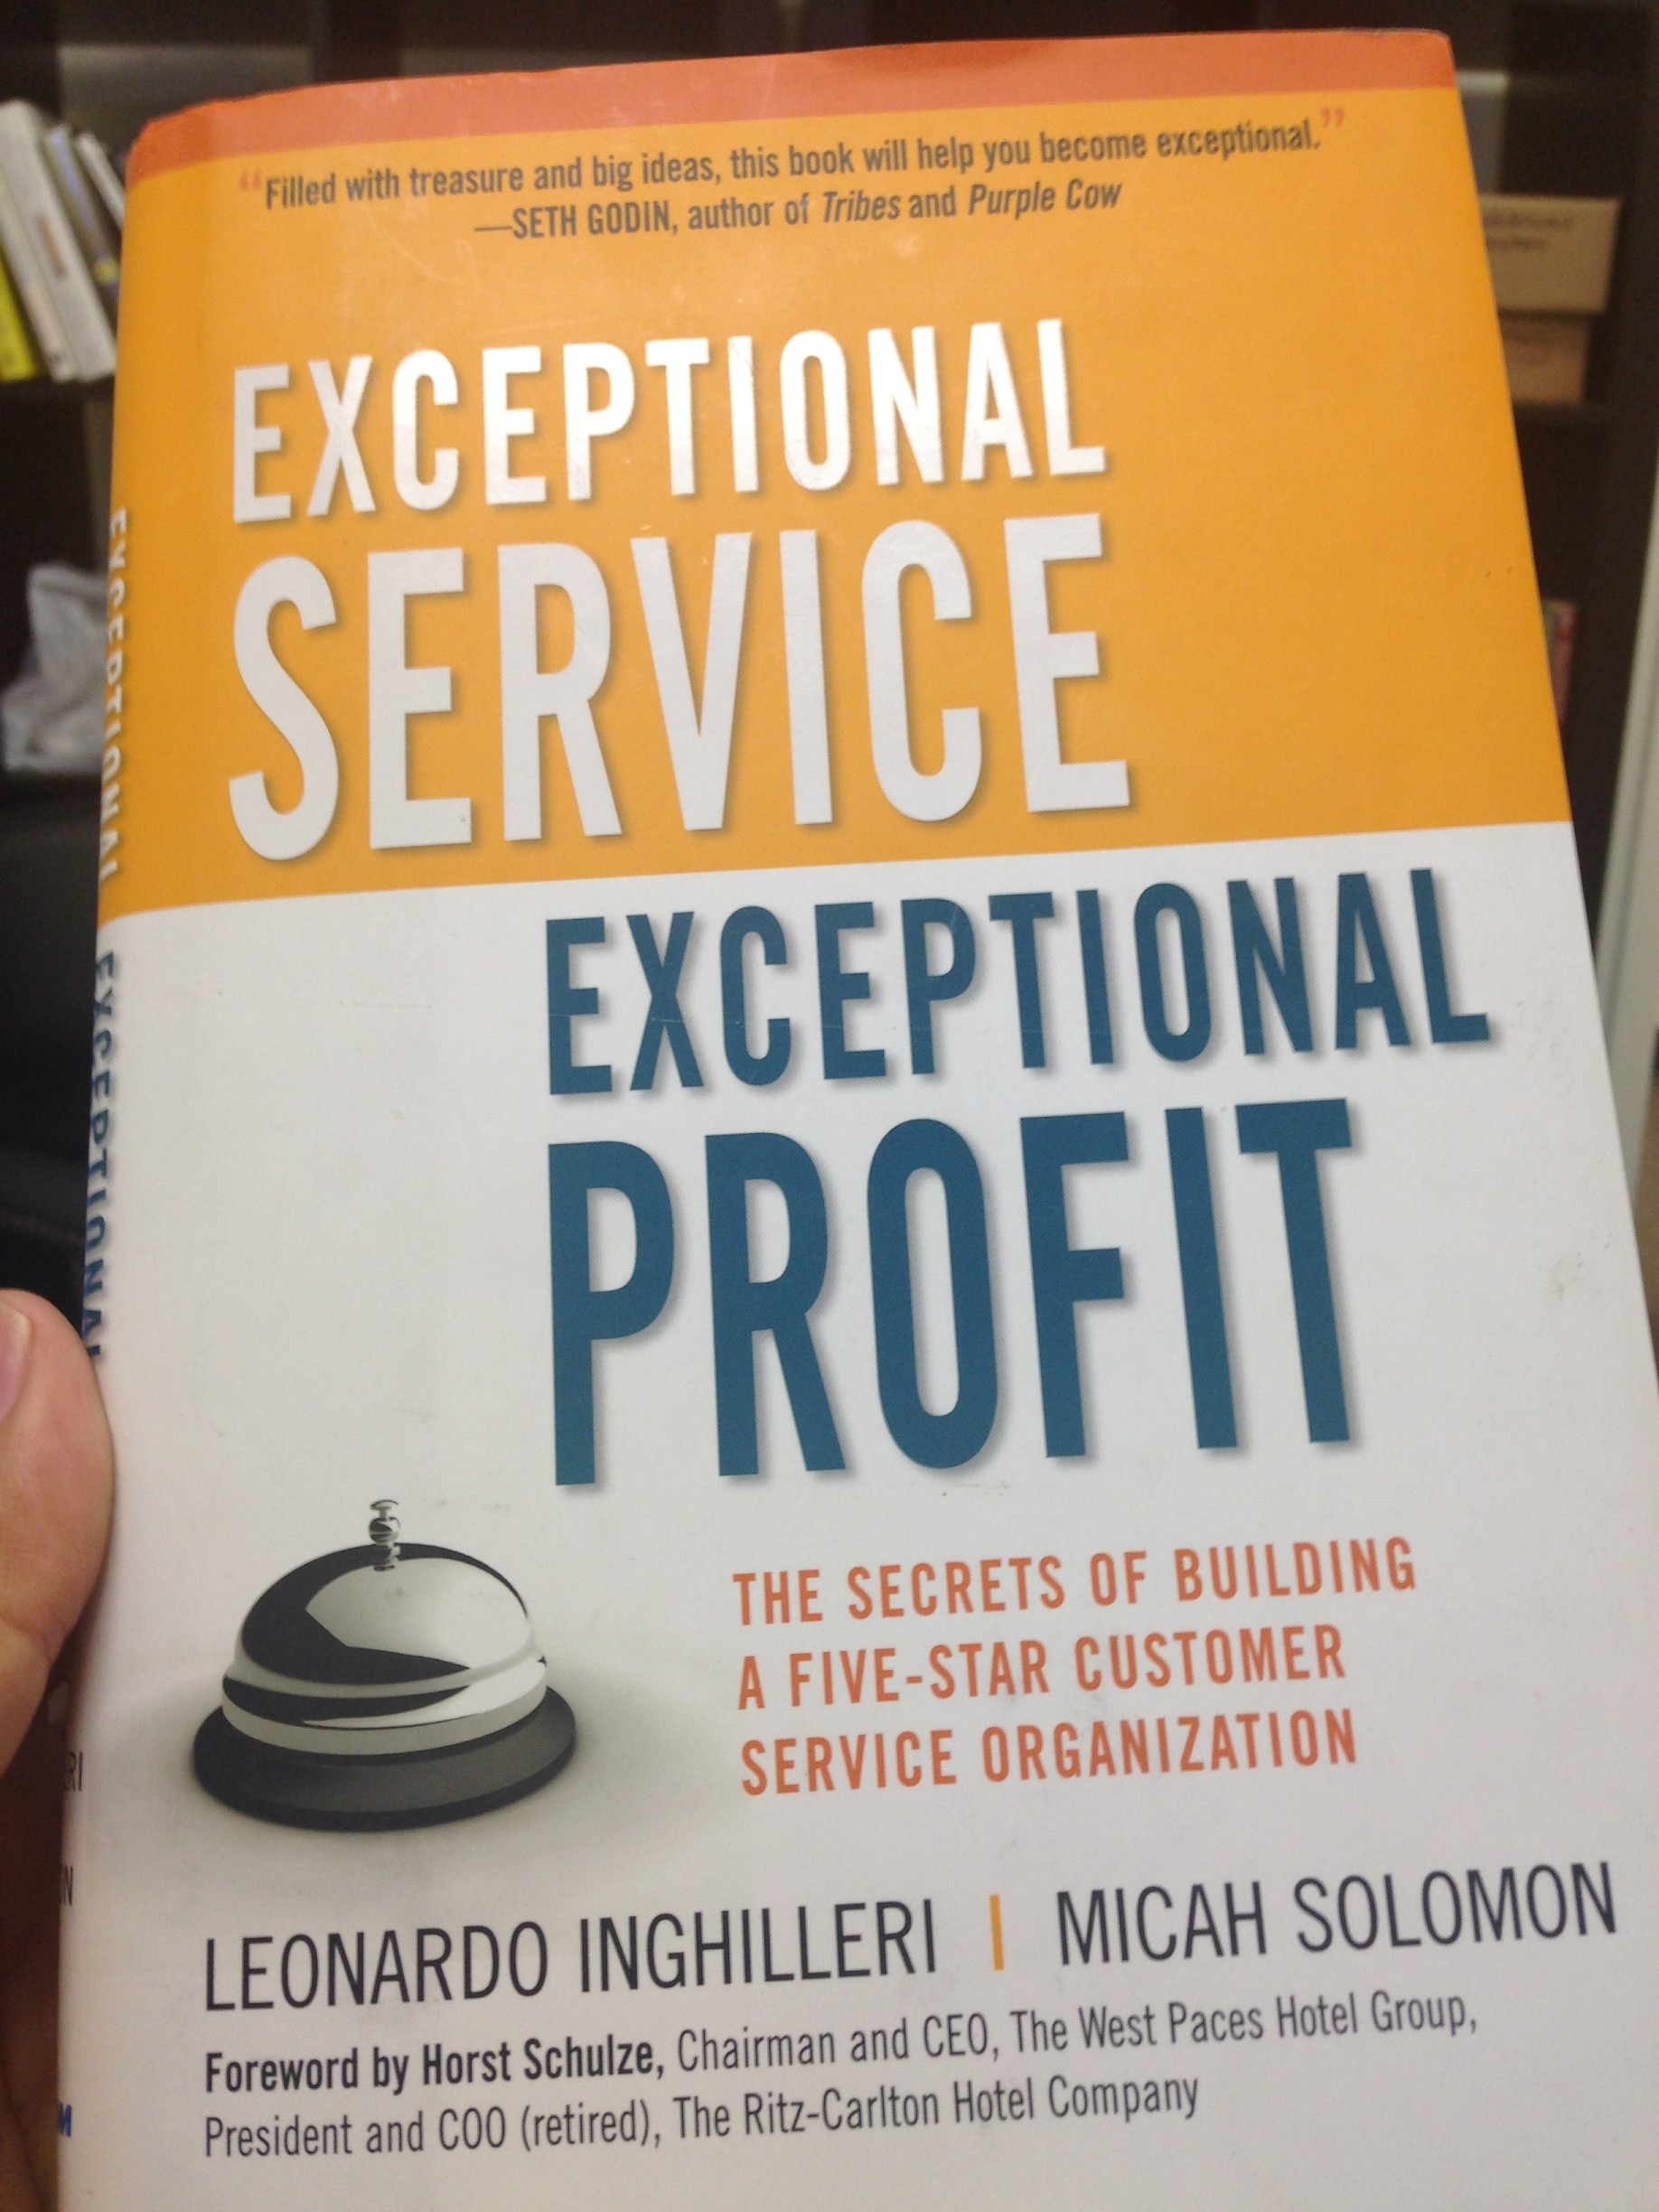 Exceptional Service, Exceptional Profit by Leonardo Inghilleri and Micah Solomon